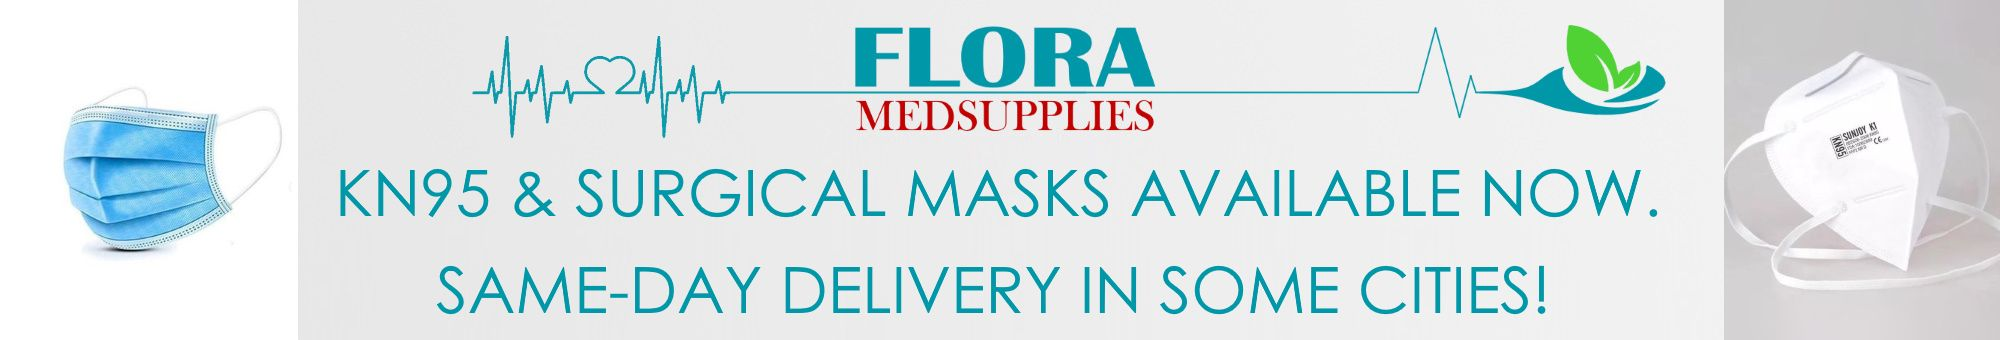 Buy Surgical & KN95 Masks Online - Fast Delivery